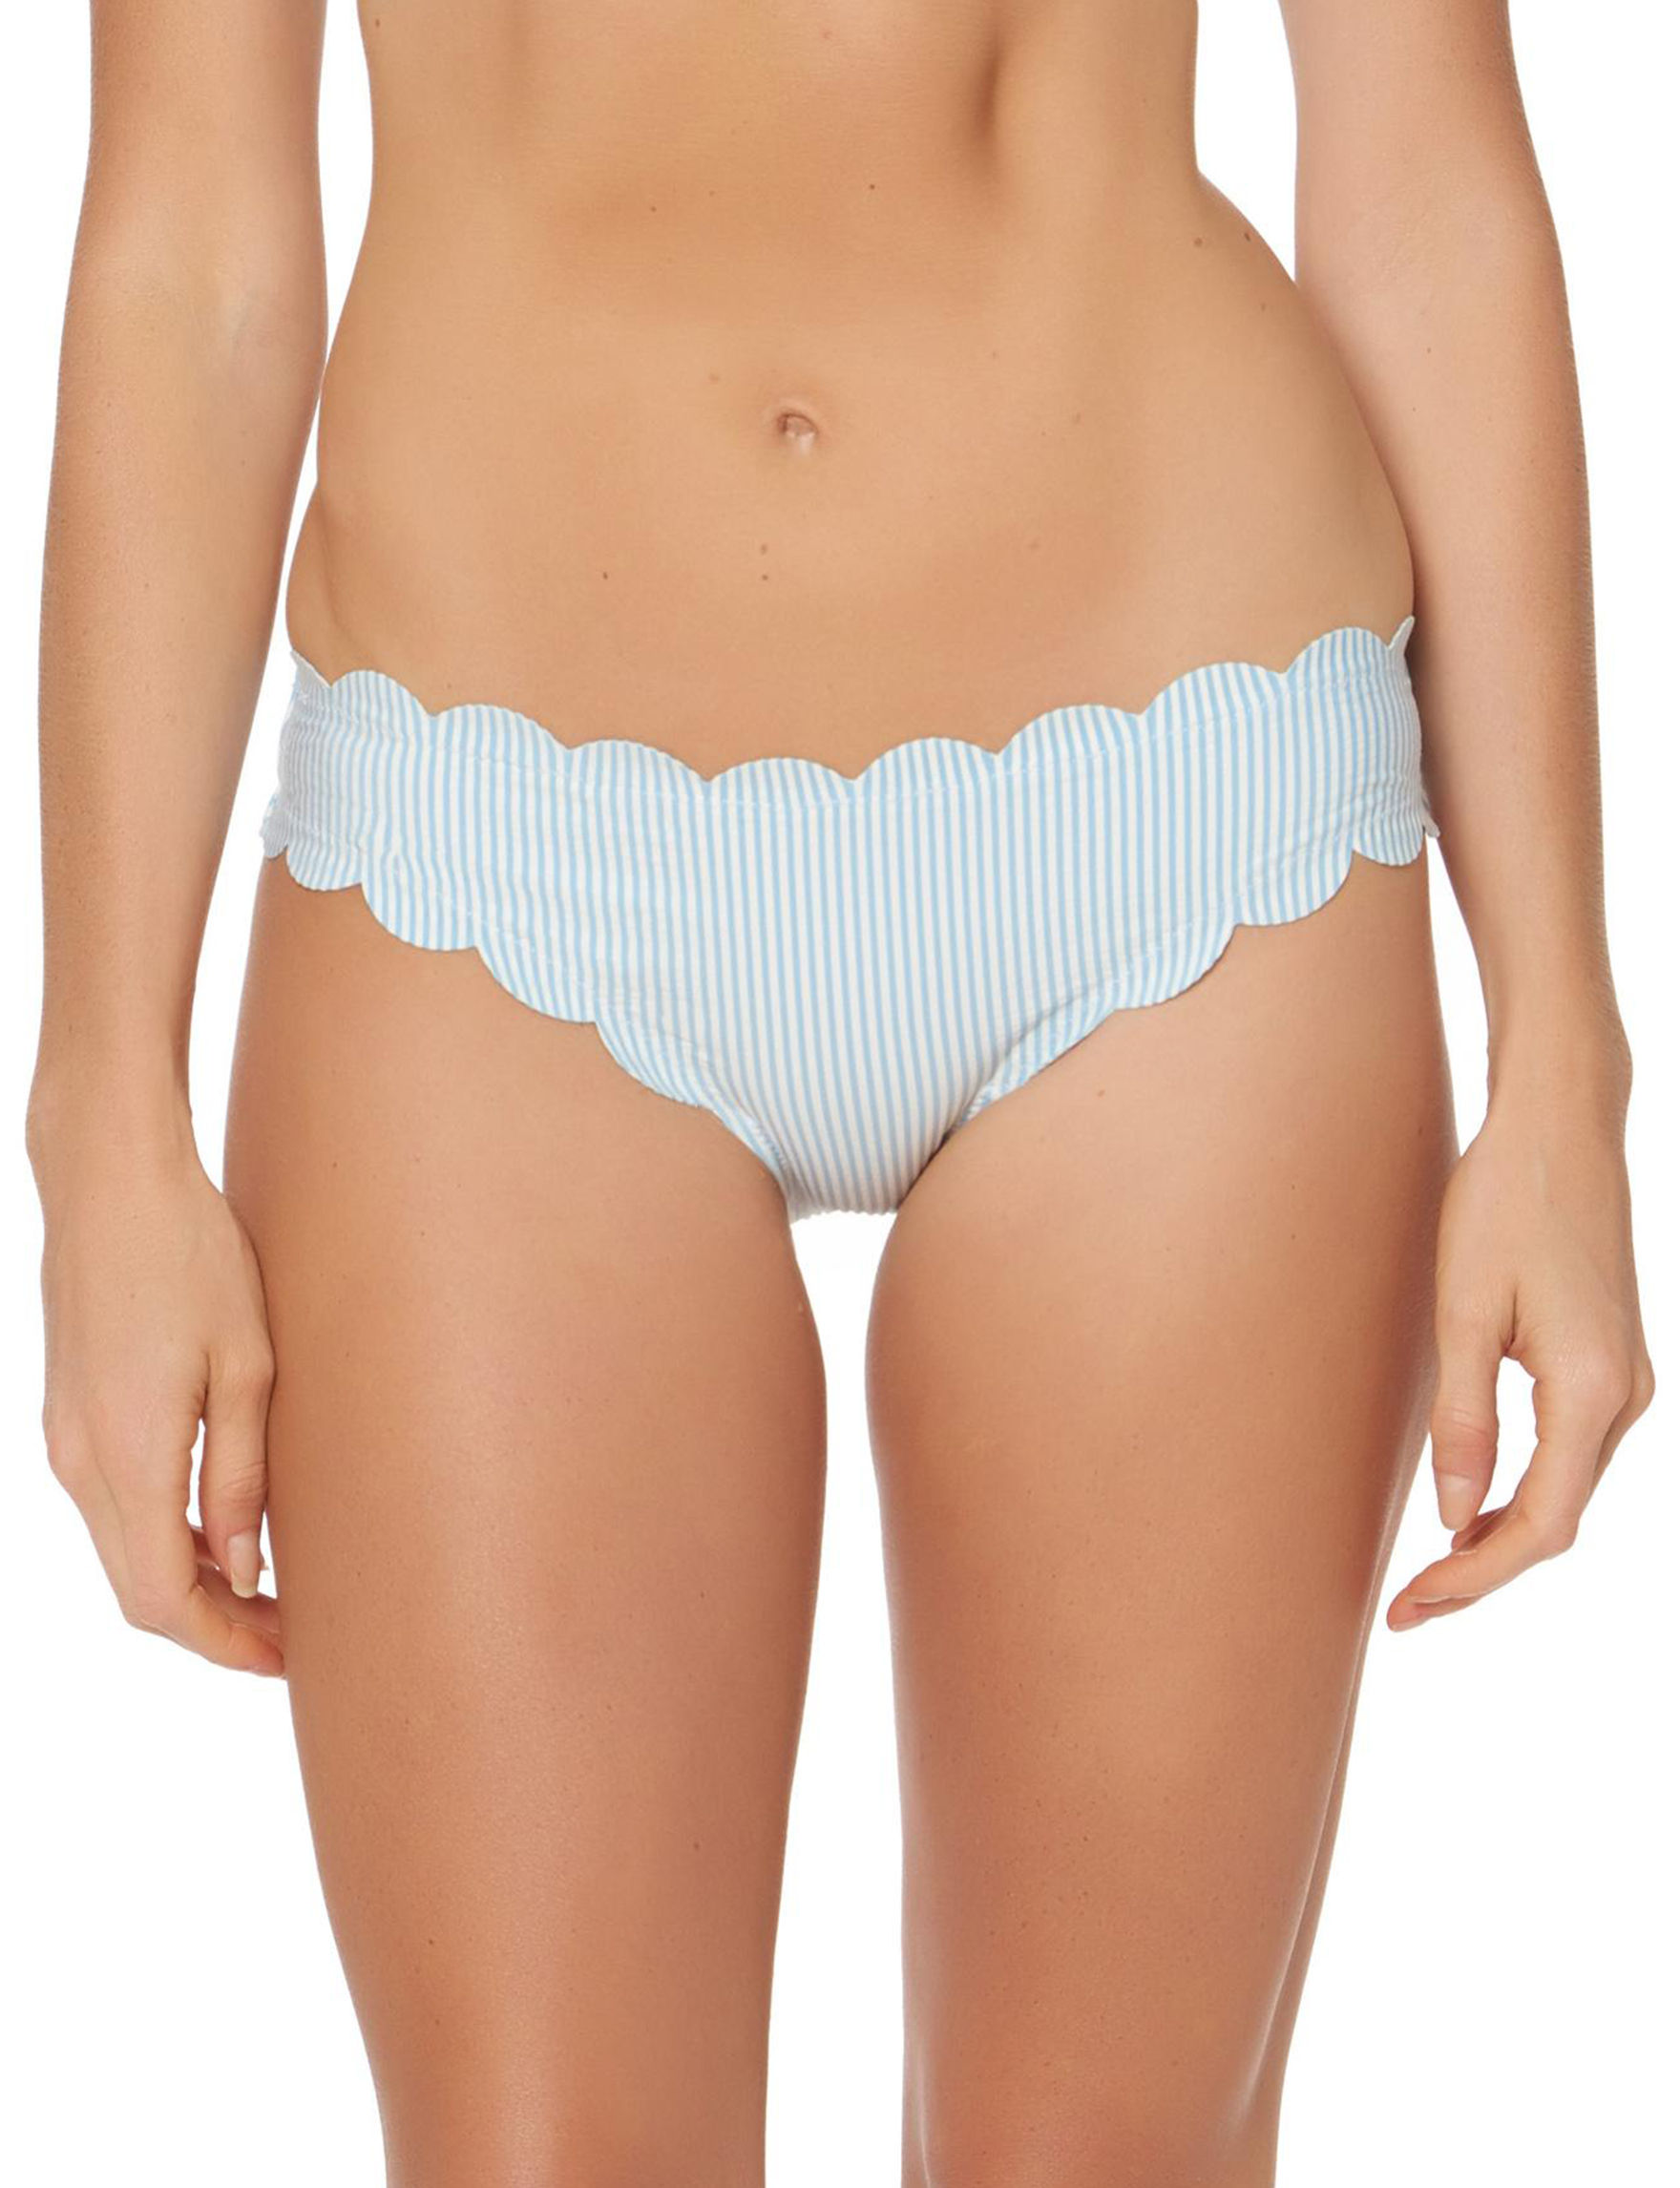 Jessica Simpson Blue Swimsuit Bottoms Hipster